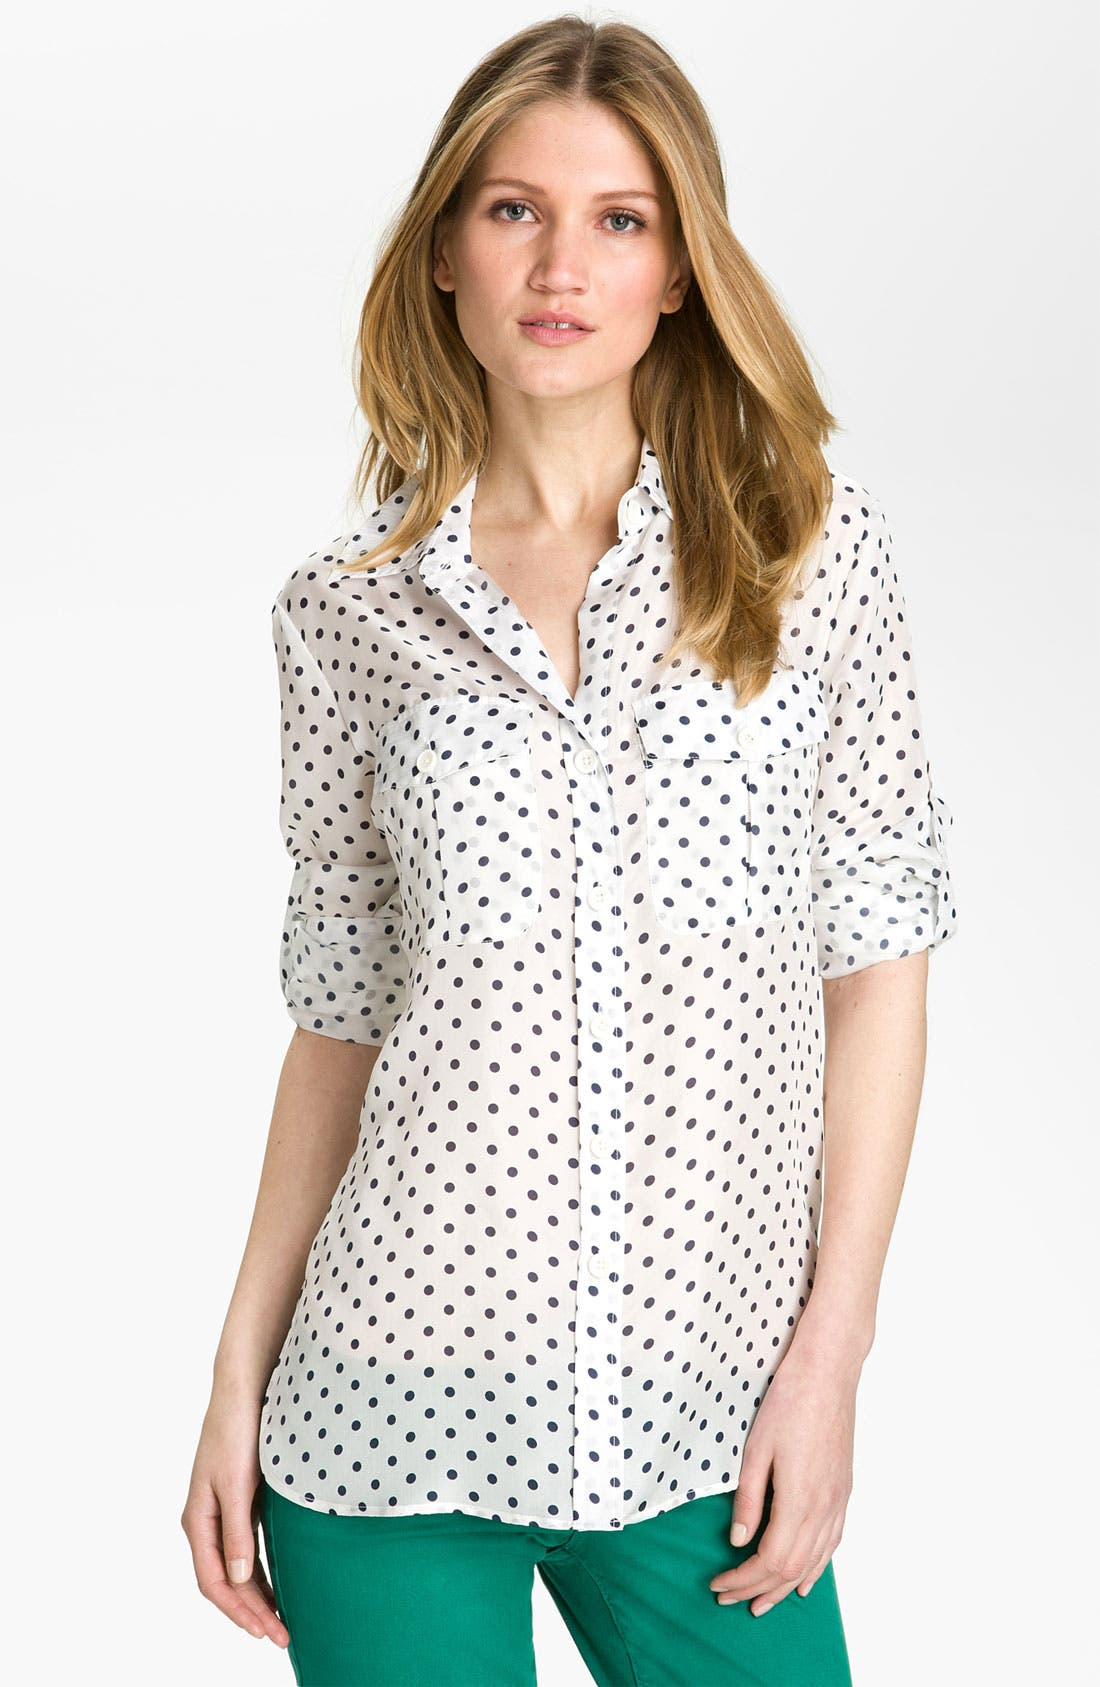 BELLEFLEUR Polka Dot Voile Shirt, Main, color, 119